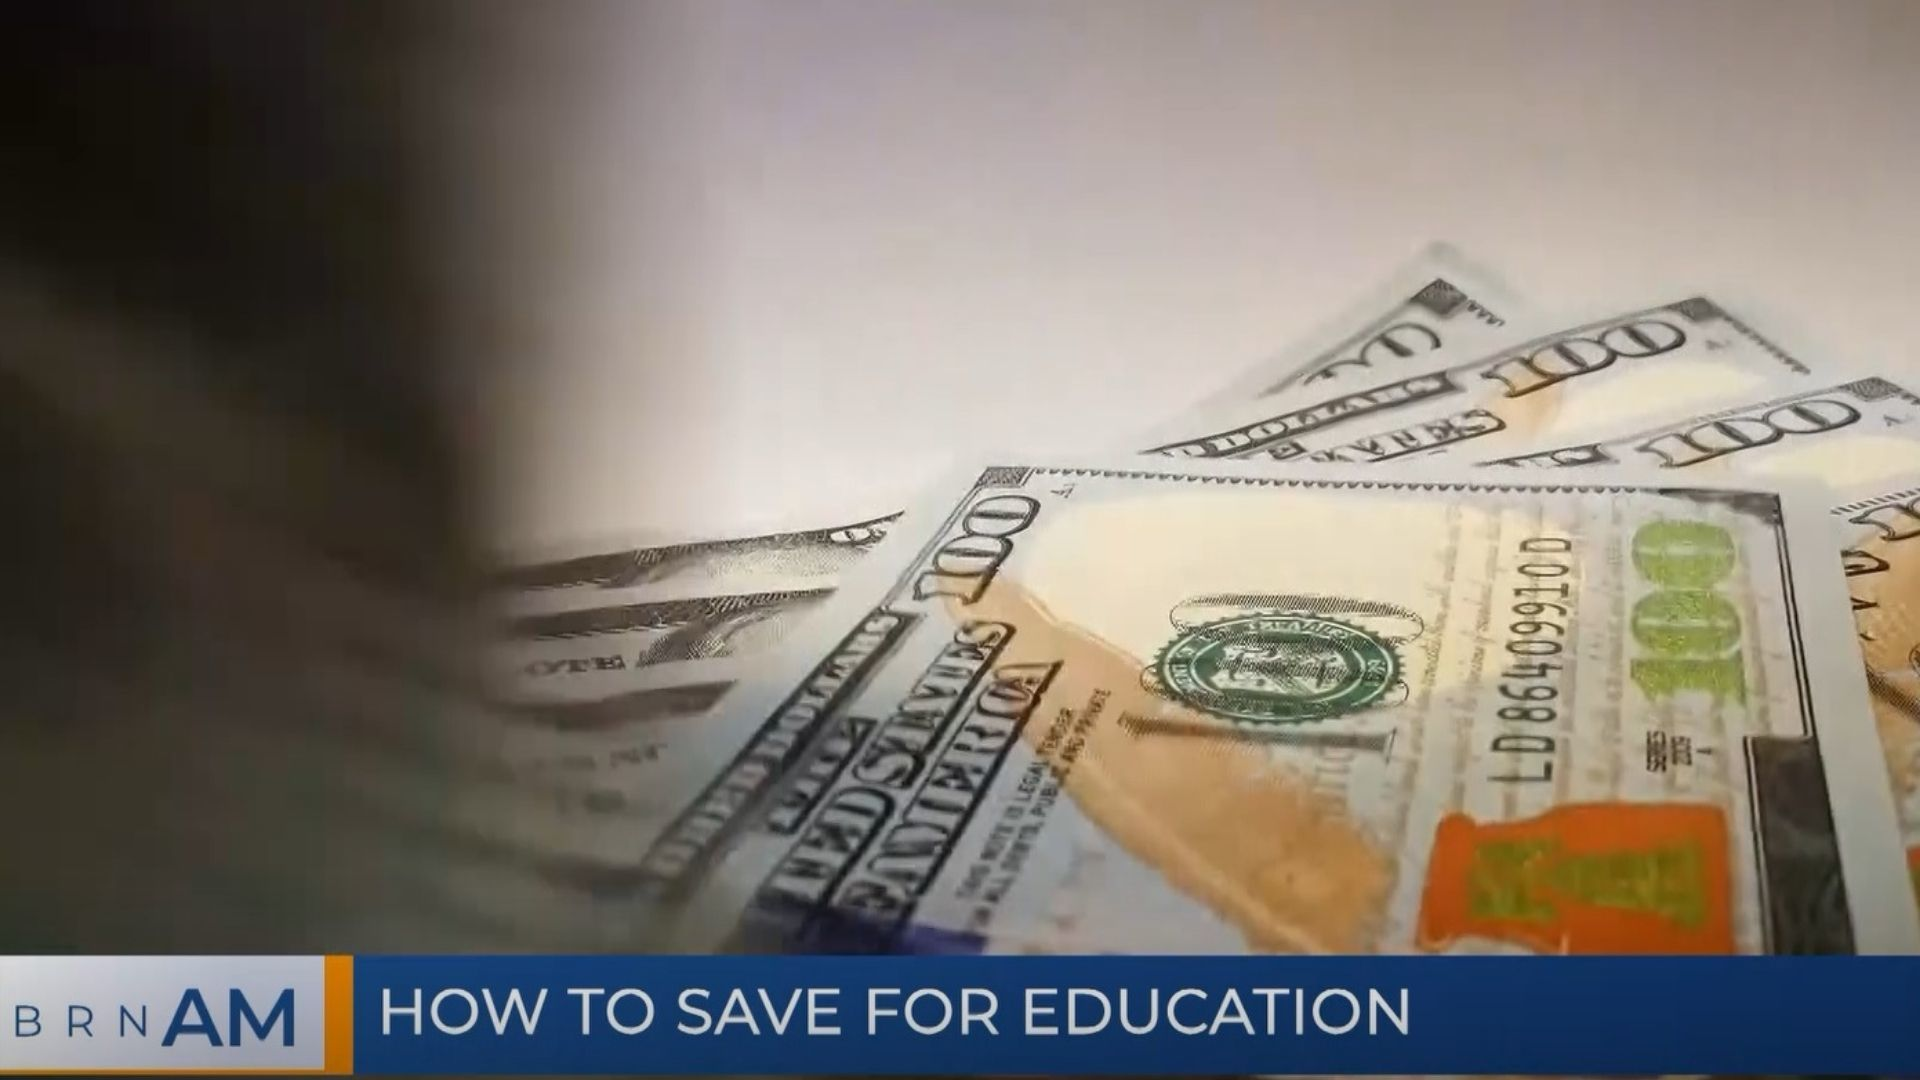 BRN AM | How to save for education